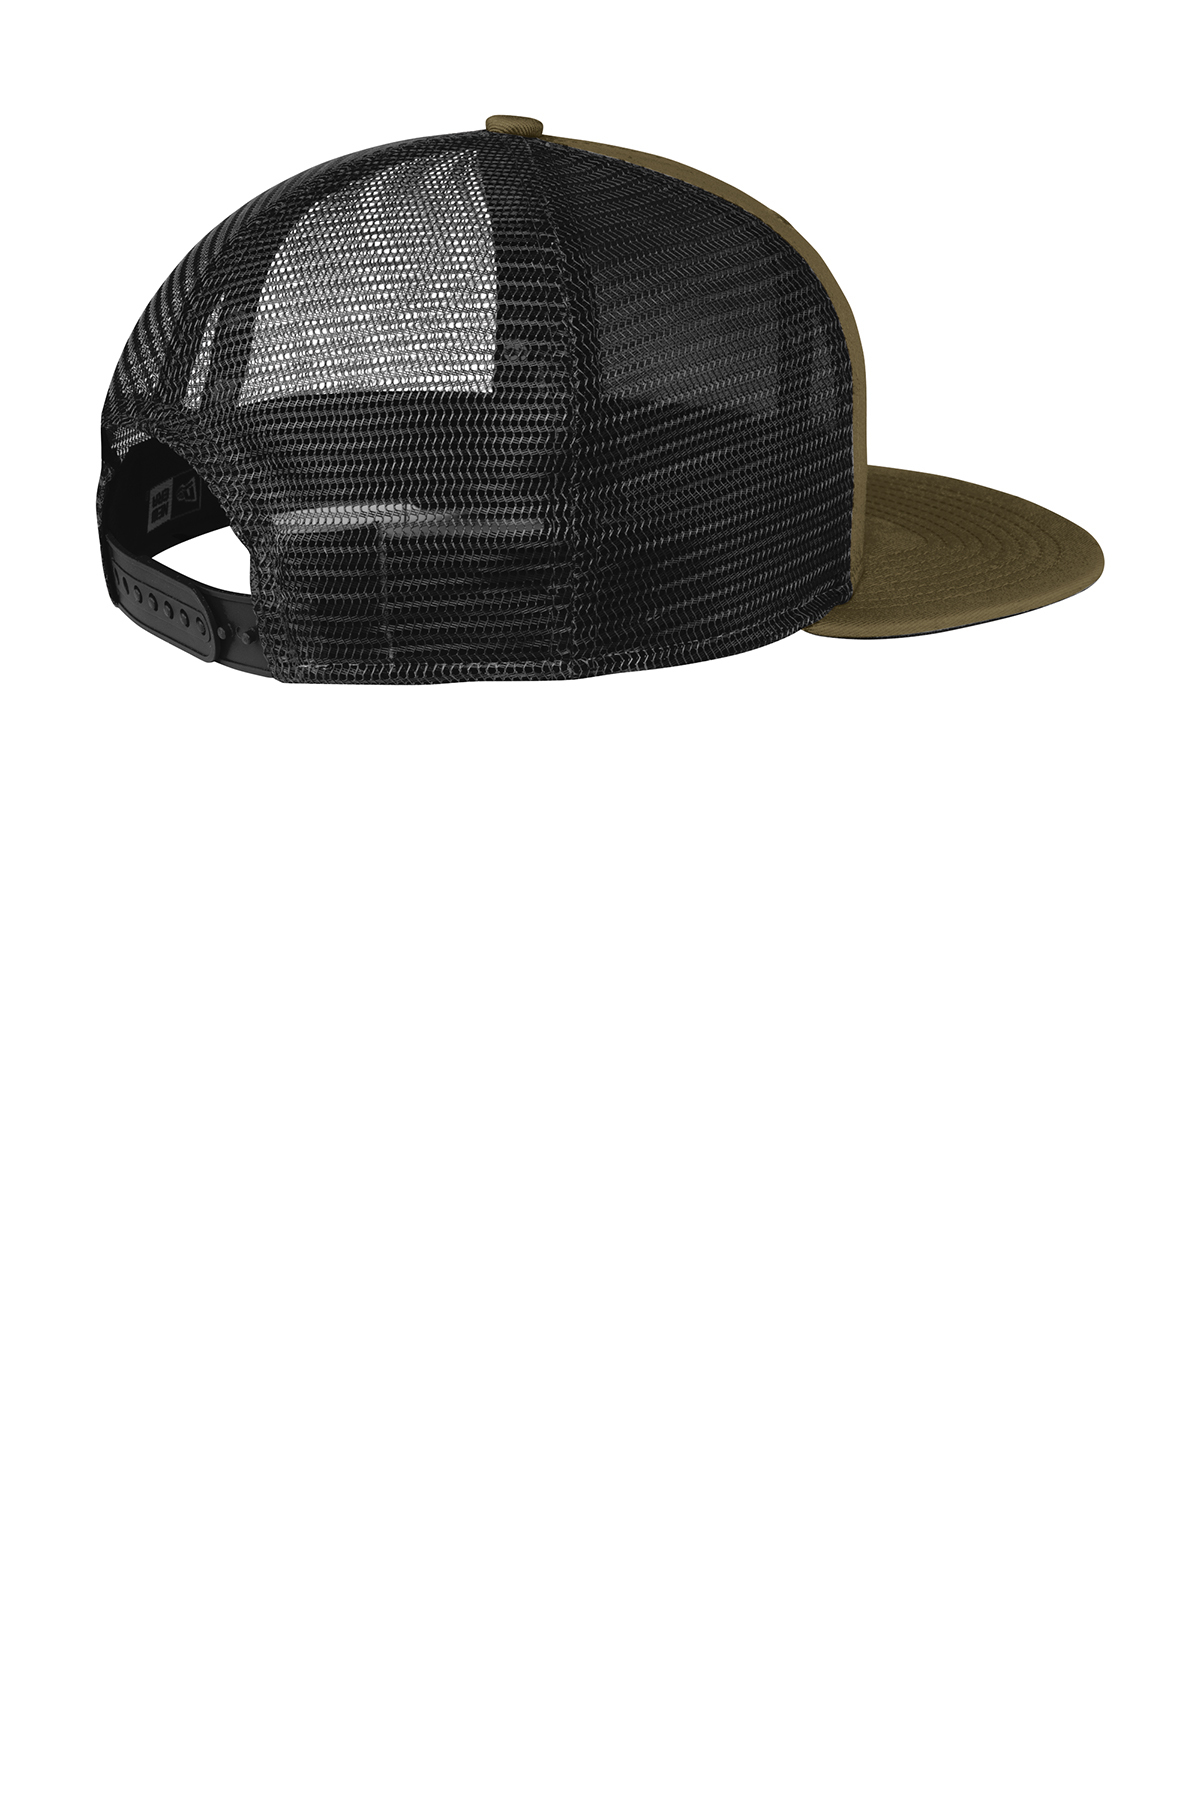 c2e5b3a75dcb9 New Era® Original Fit Snapback Trucker Cap | Mesh Back | Caps | SanMar